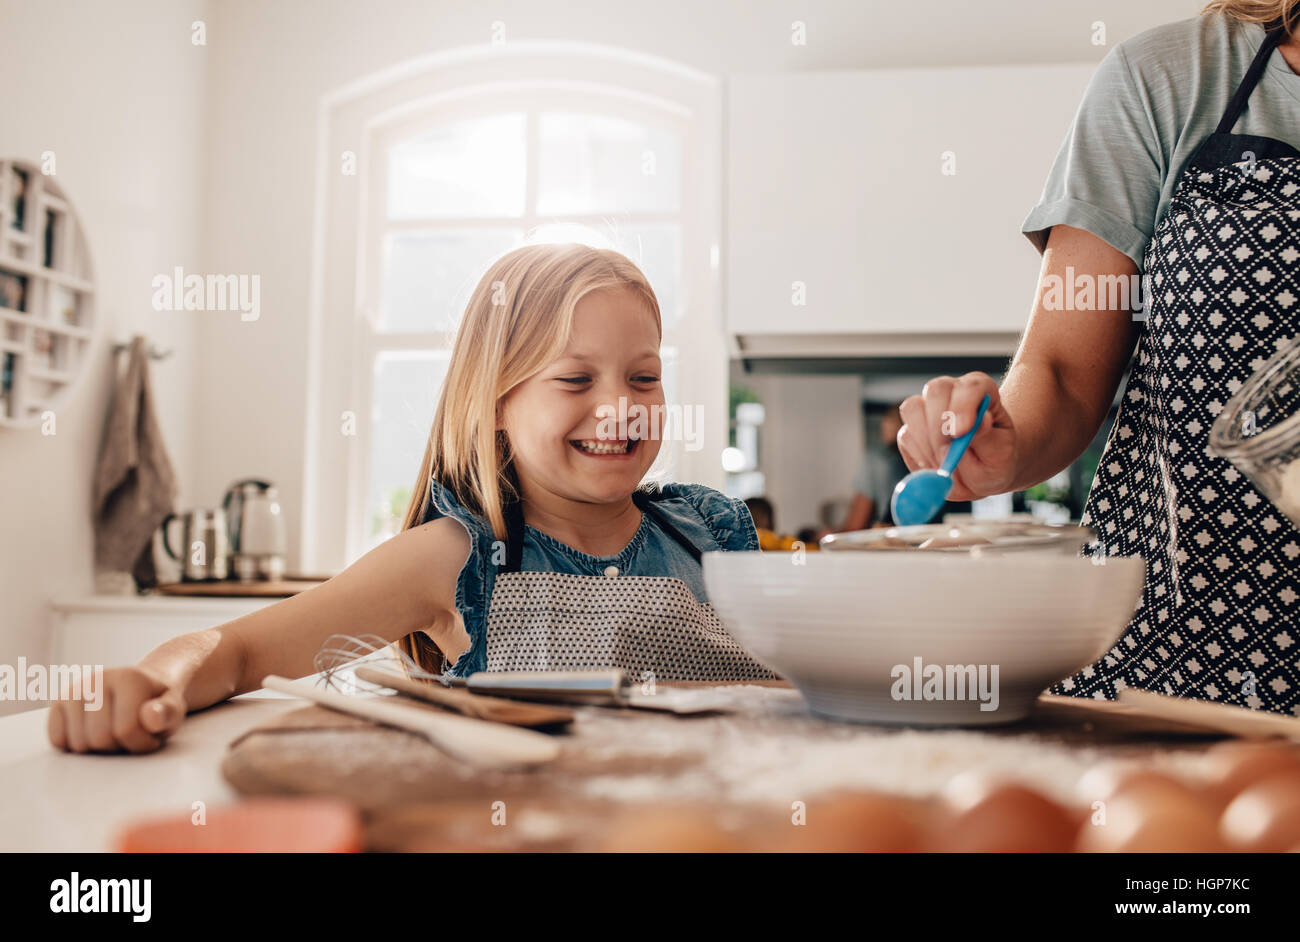 Happy little girl standing in kitchen and her mother cooking food. Mother and happy daughter baking in kitchen. - Stock Image